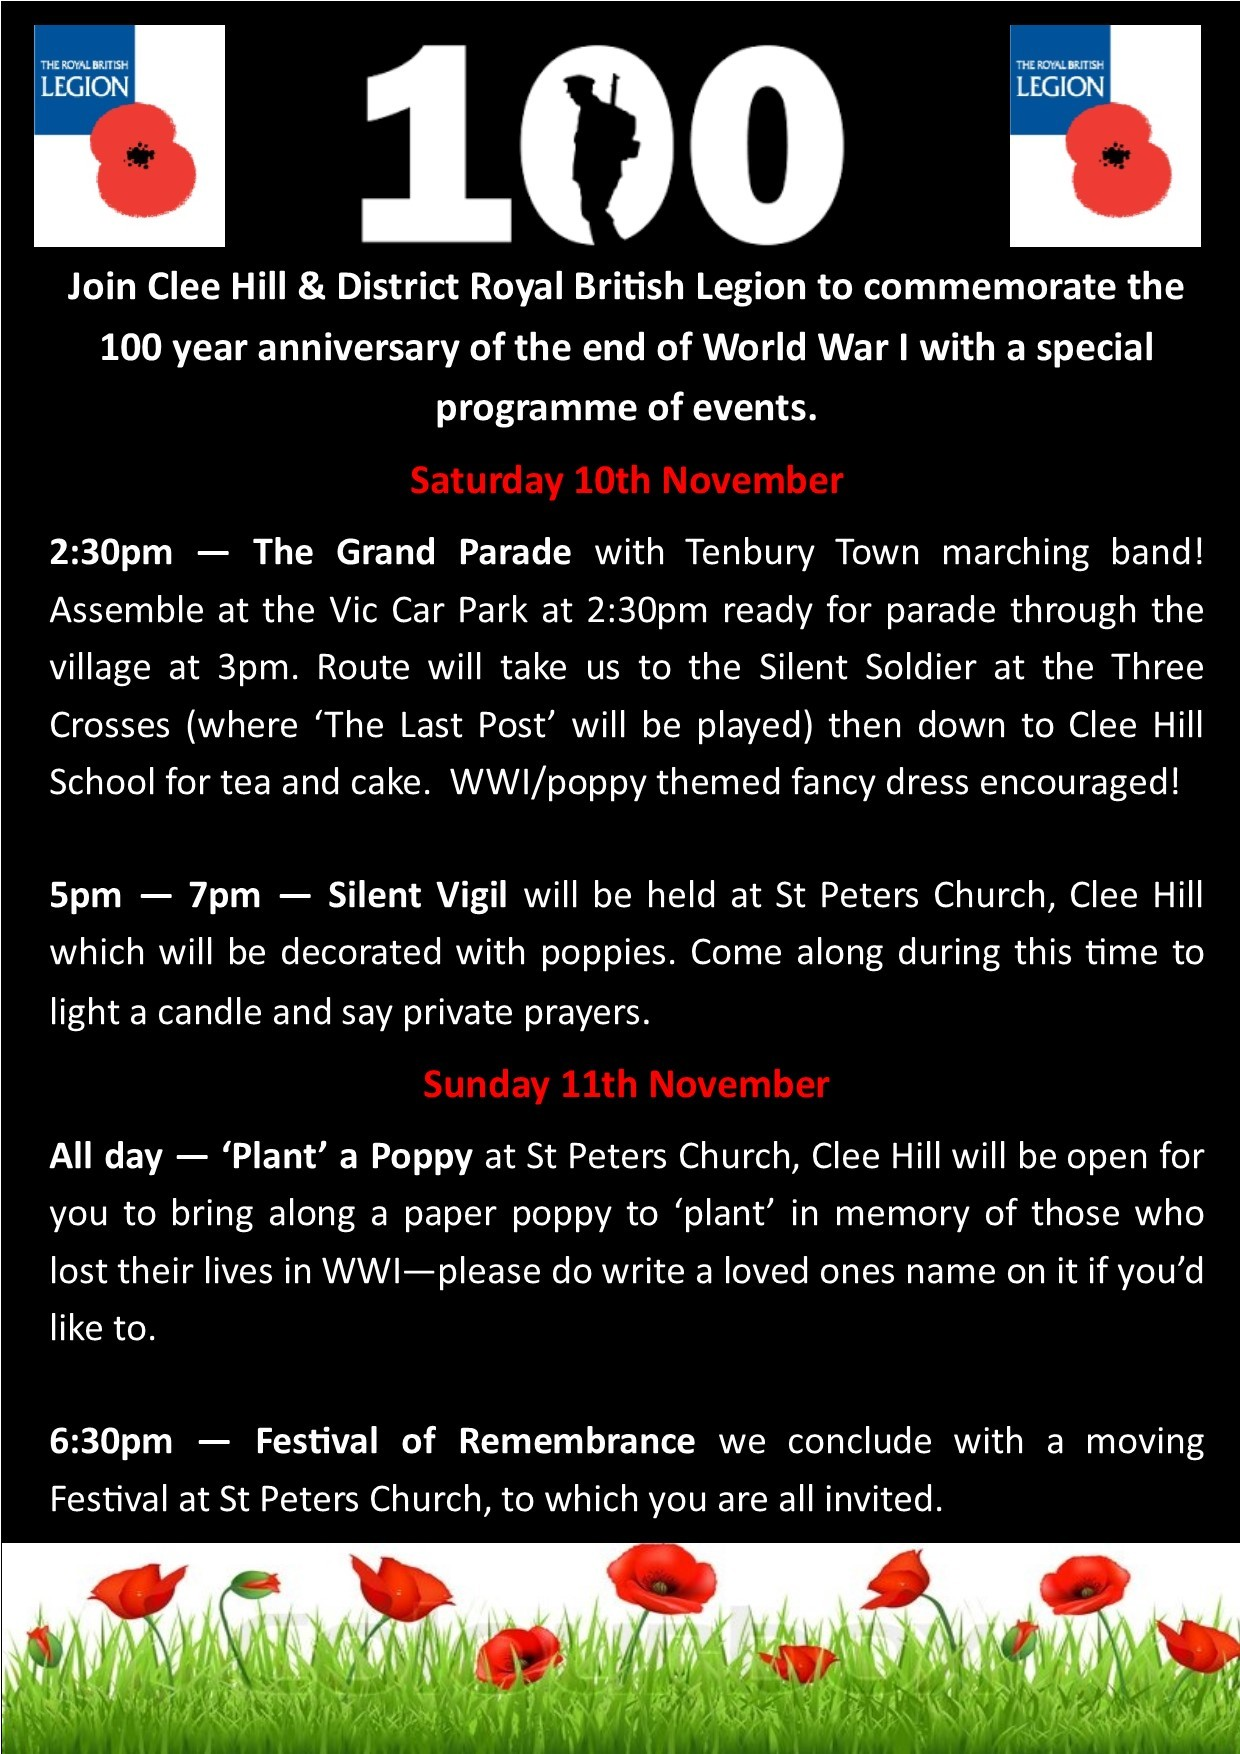 Launch of Poppy Appeal events in Clee Hill